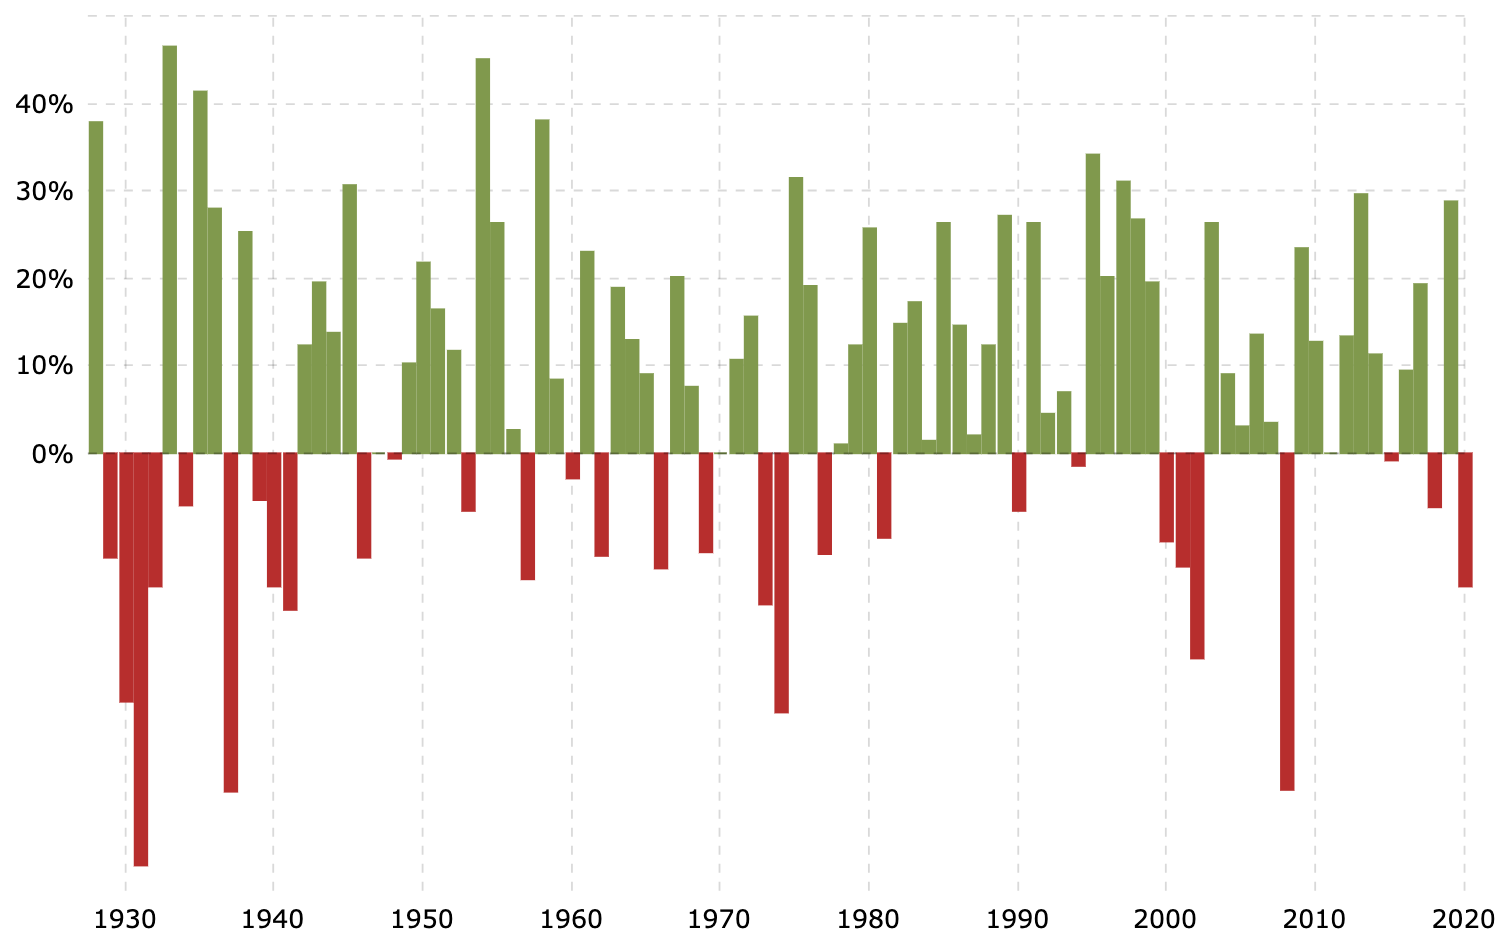 Historical stock market returns by year